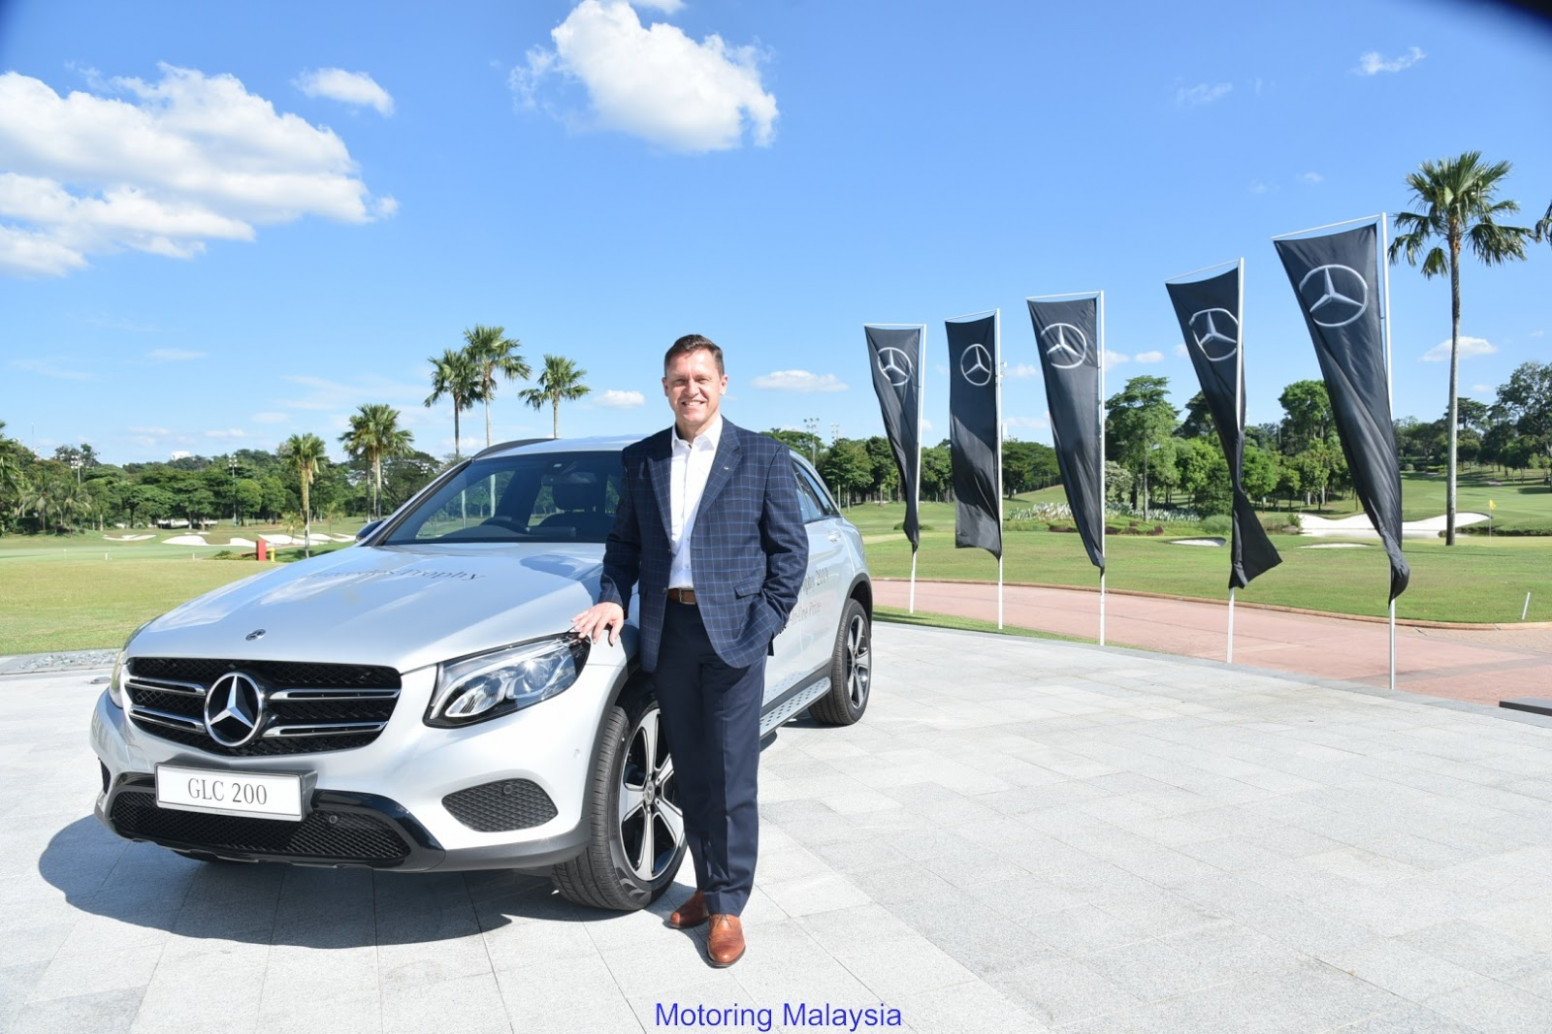 Motoring-Malaysia: MercedesTrophy 10 Malaysia is Now Open for ..